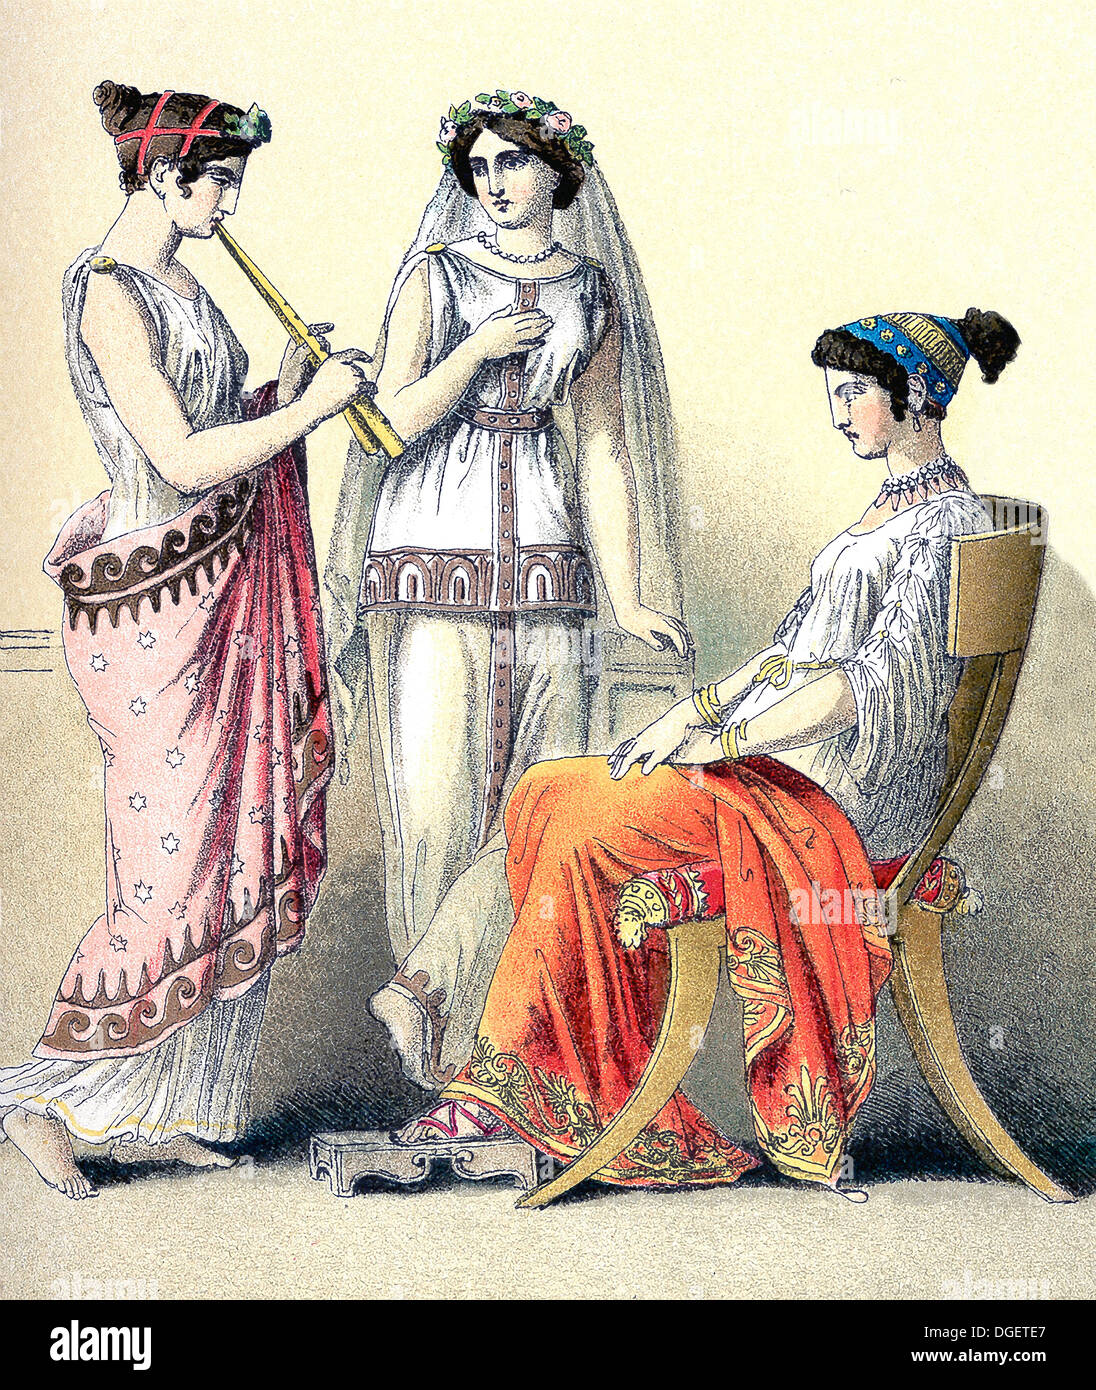 The figures illustrate Greek women, from left to right: flute-player and two women of the upper classes. - Stock Image